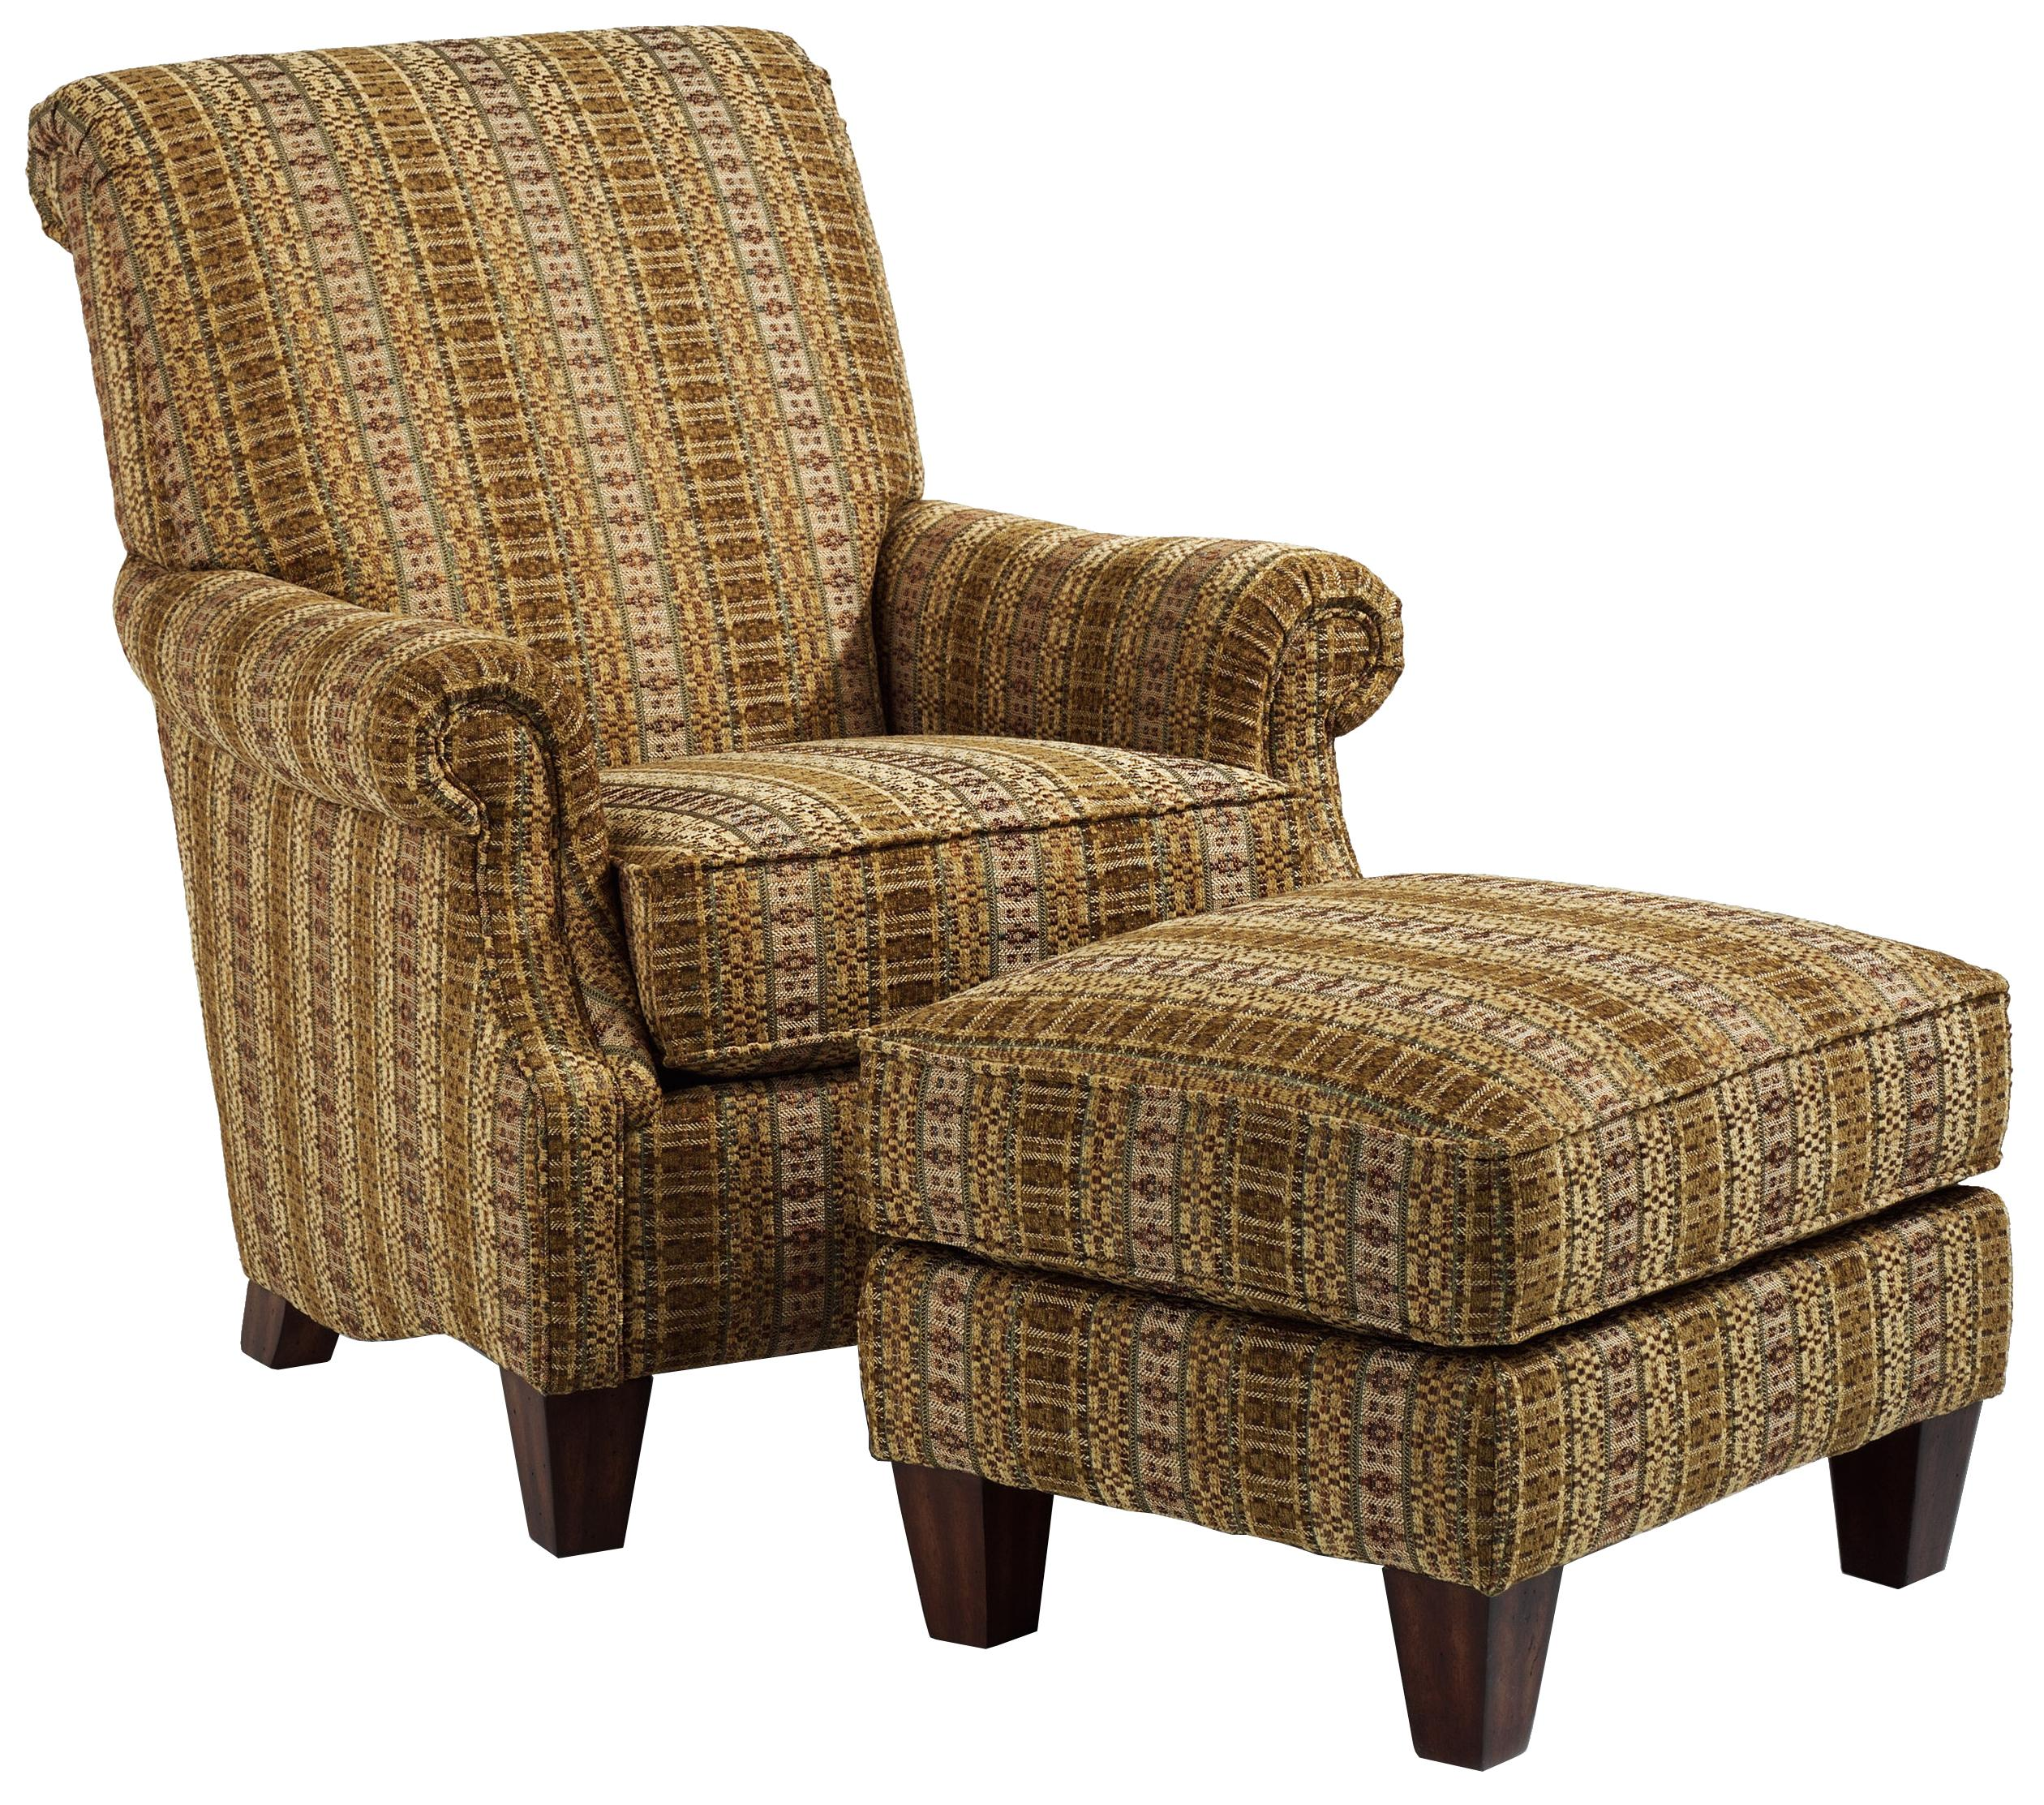 Flexsteel Stafford Traditional Styled Chair and Ottoman Set for